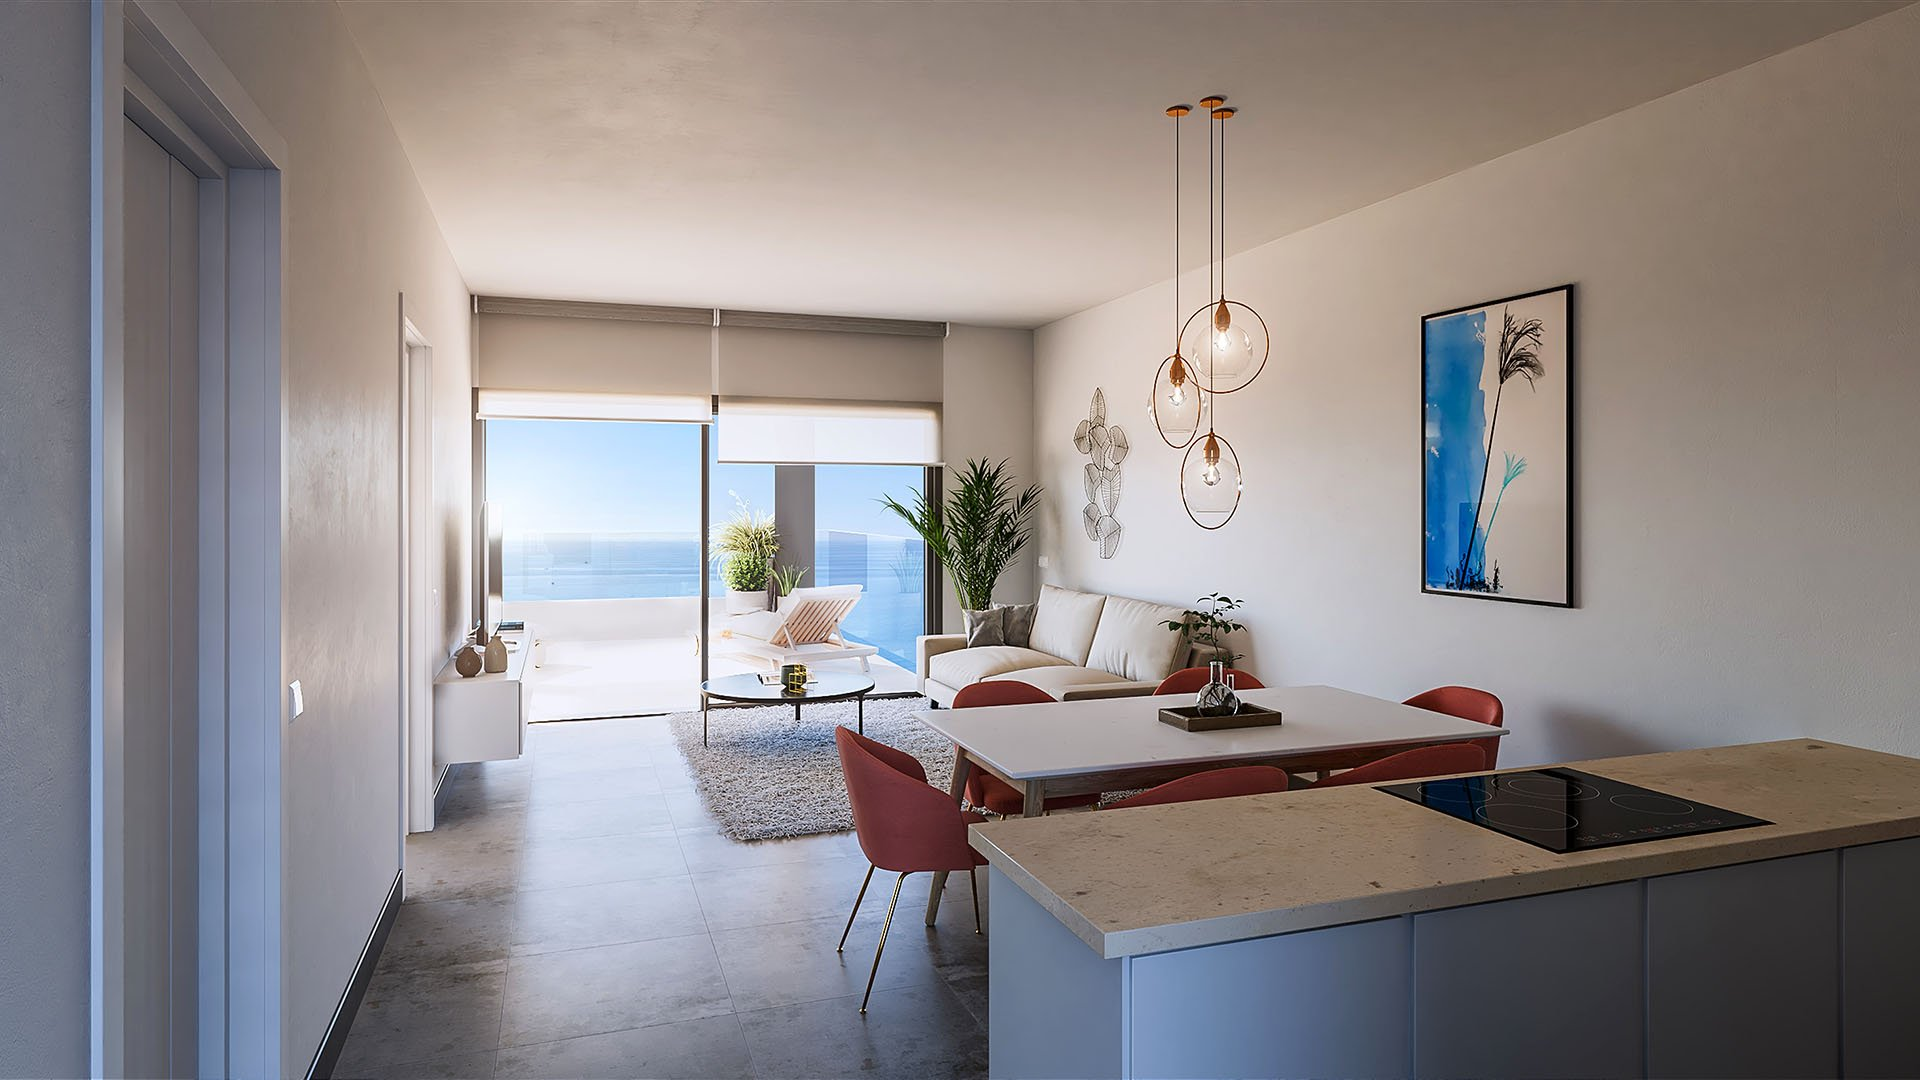 Seaviews Reserve: Apartments and penthouses at walking distance from the beach and promenade